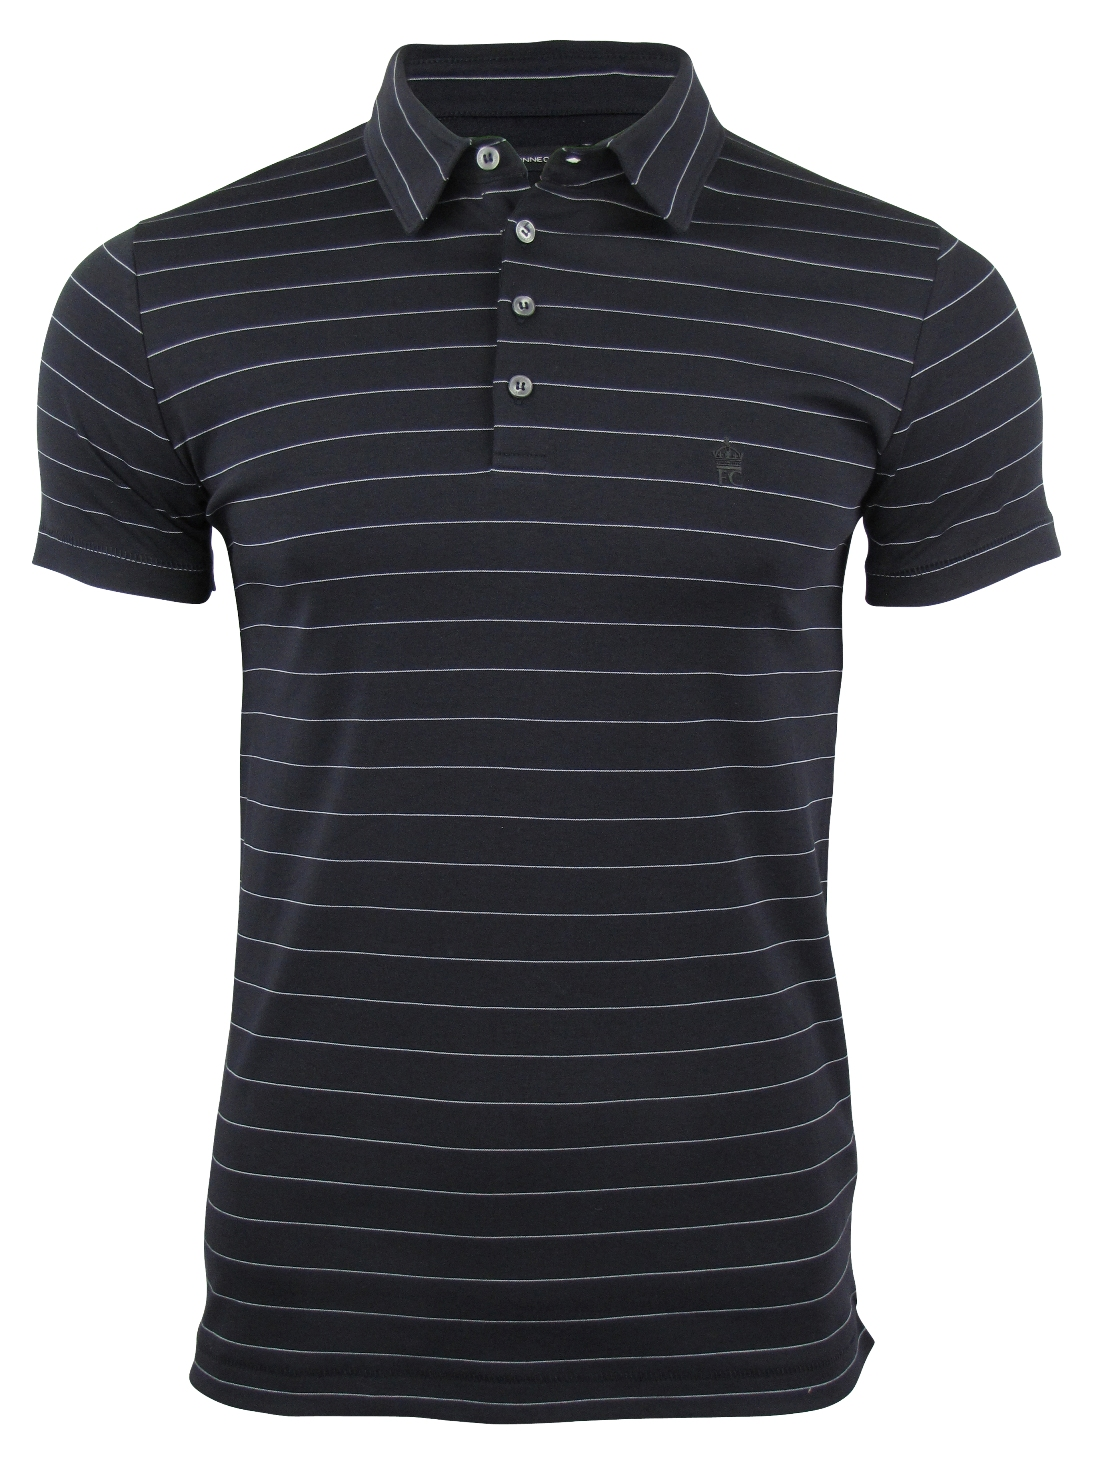 french connection fcuk stripe polo t shirt ebay. Black Bedroom Furniture Sets. Home Design Ideas